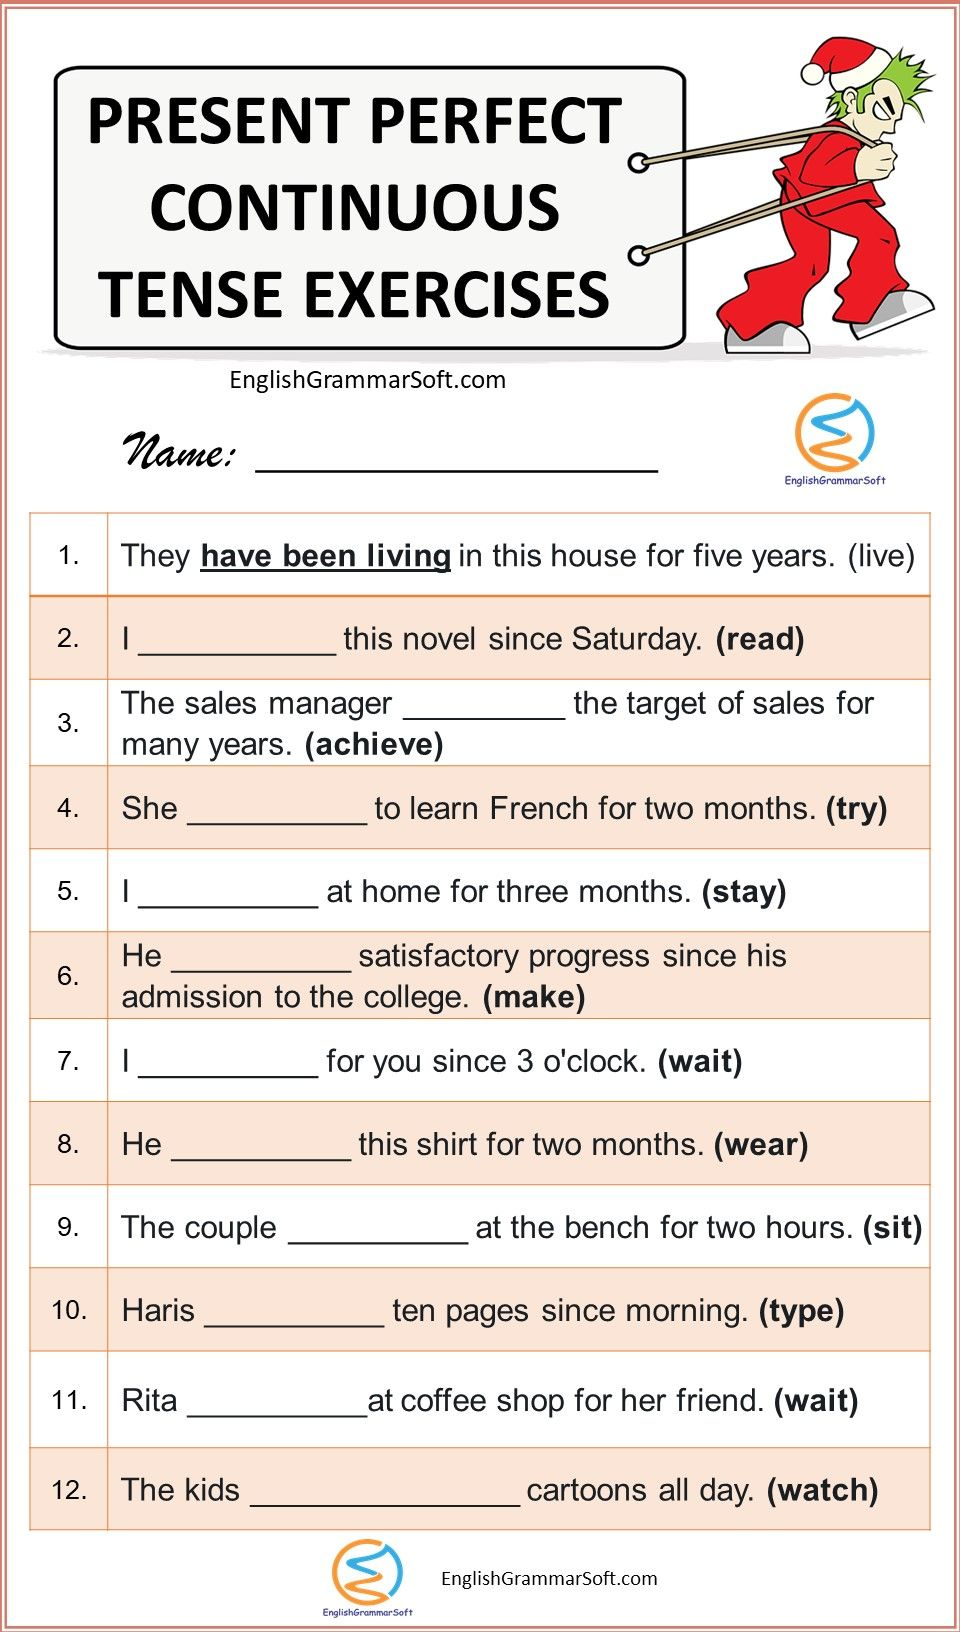 Present Perfect Continuous Tense with Examples, Exercise